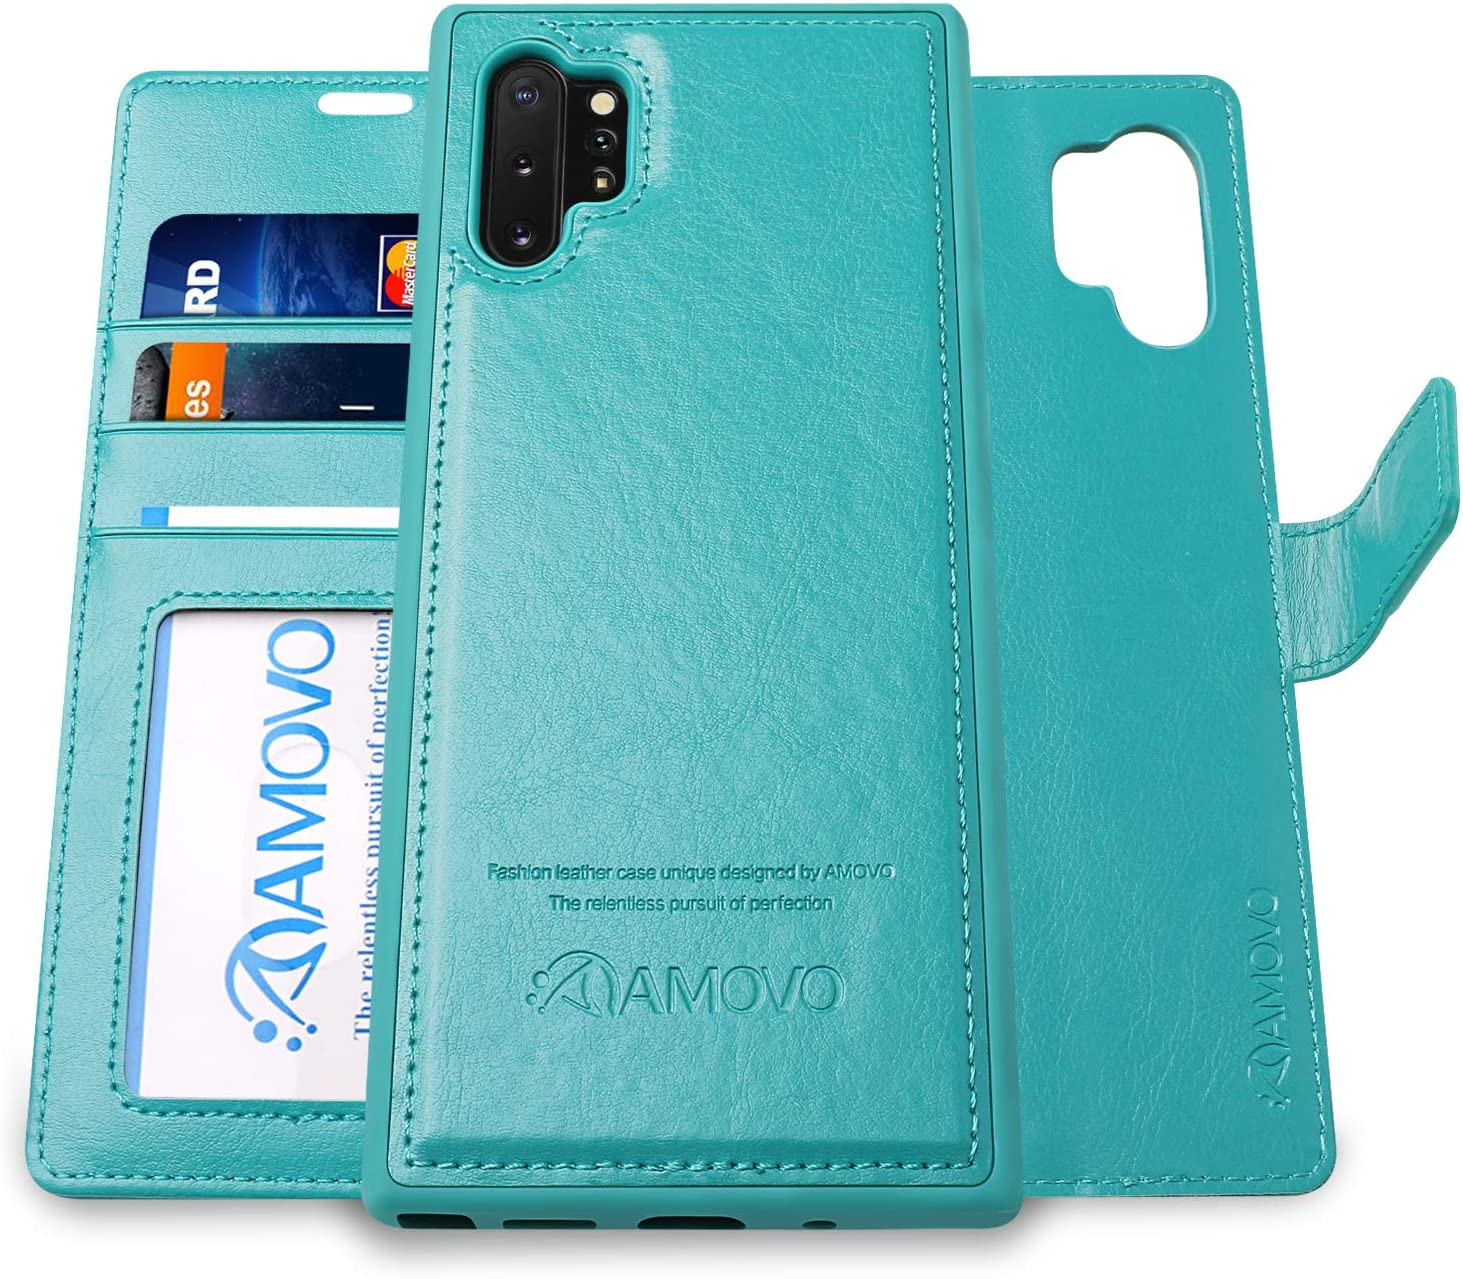 Samsung S10+ Flip Case with Gift Box Package S10Plus AMOVO Galaxy S10 Plus Case 2 in 1 , Black 6.4/'/' Vegan Leather Kickstand Wrist Strap Samsung Galaxy S10 Plus Wallet Case Detachable 6.4/'/'